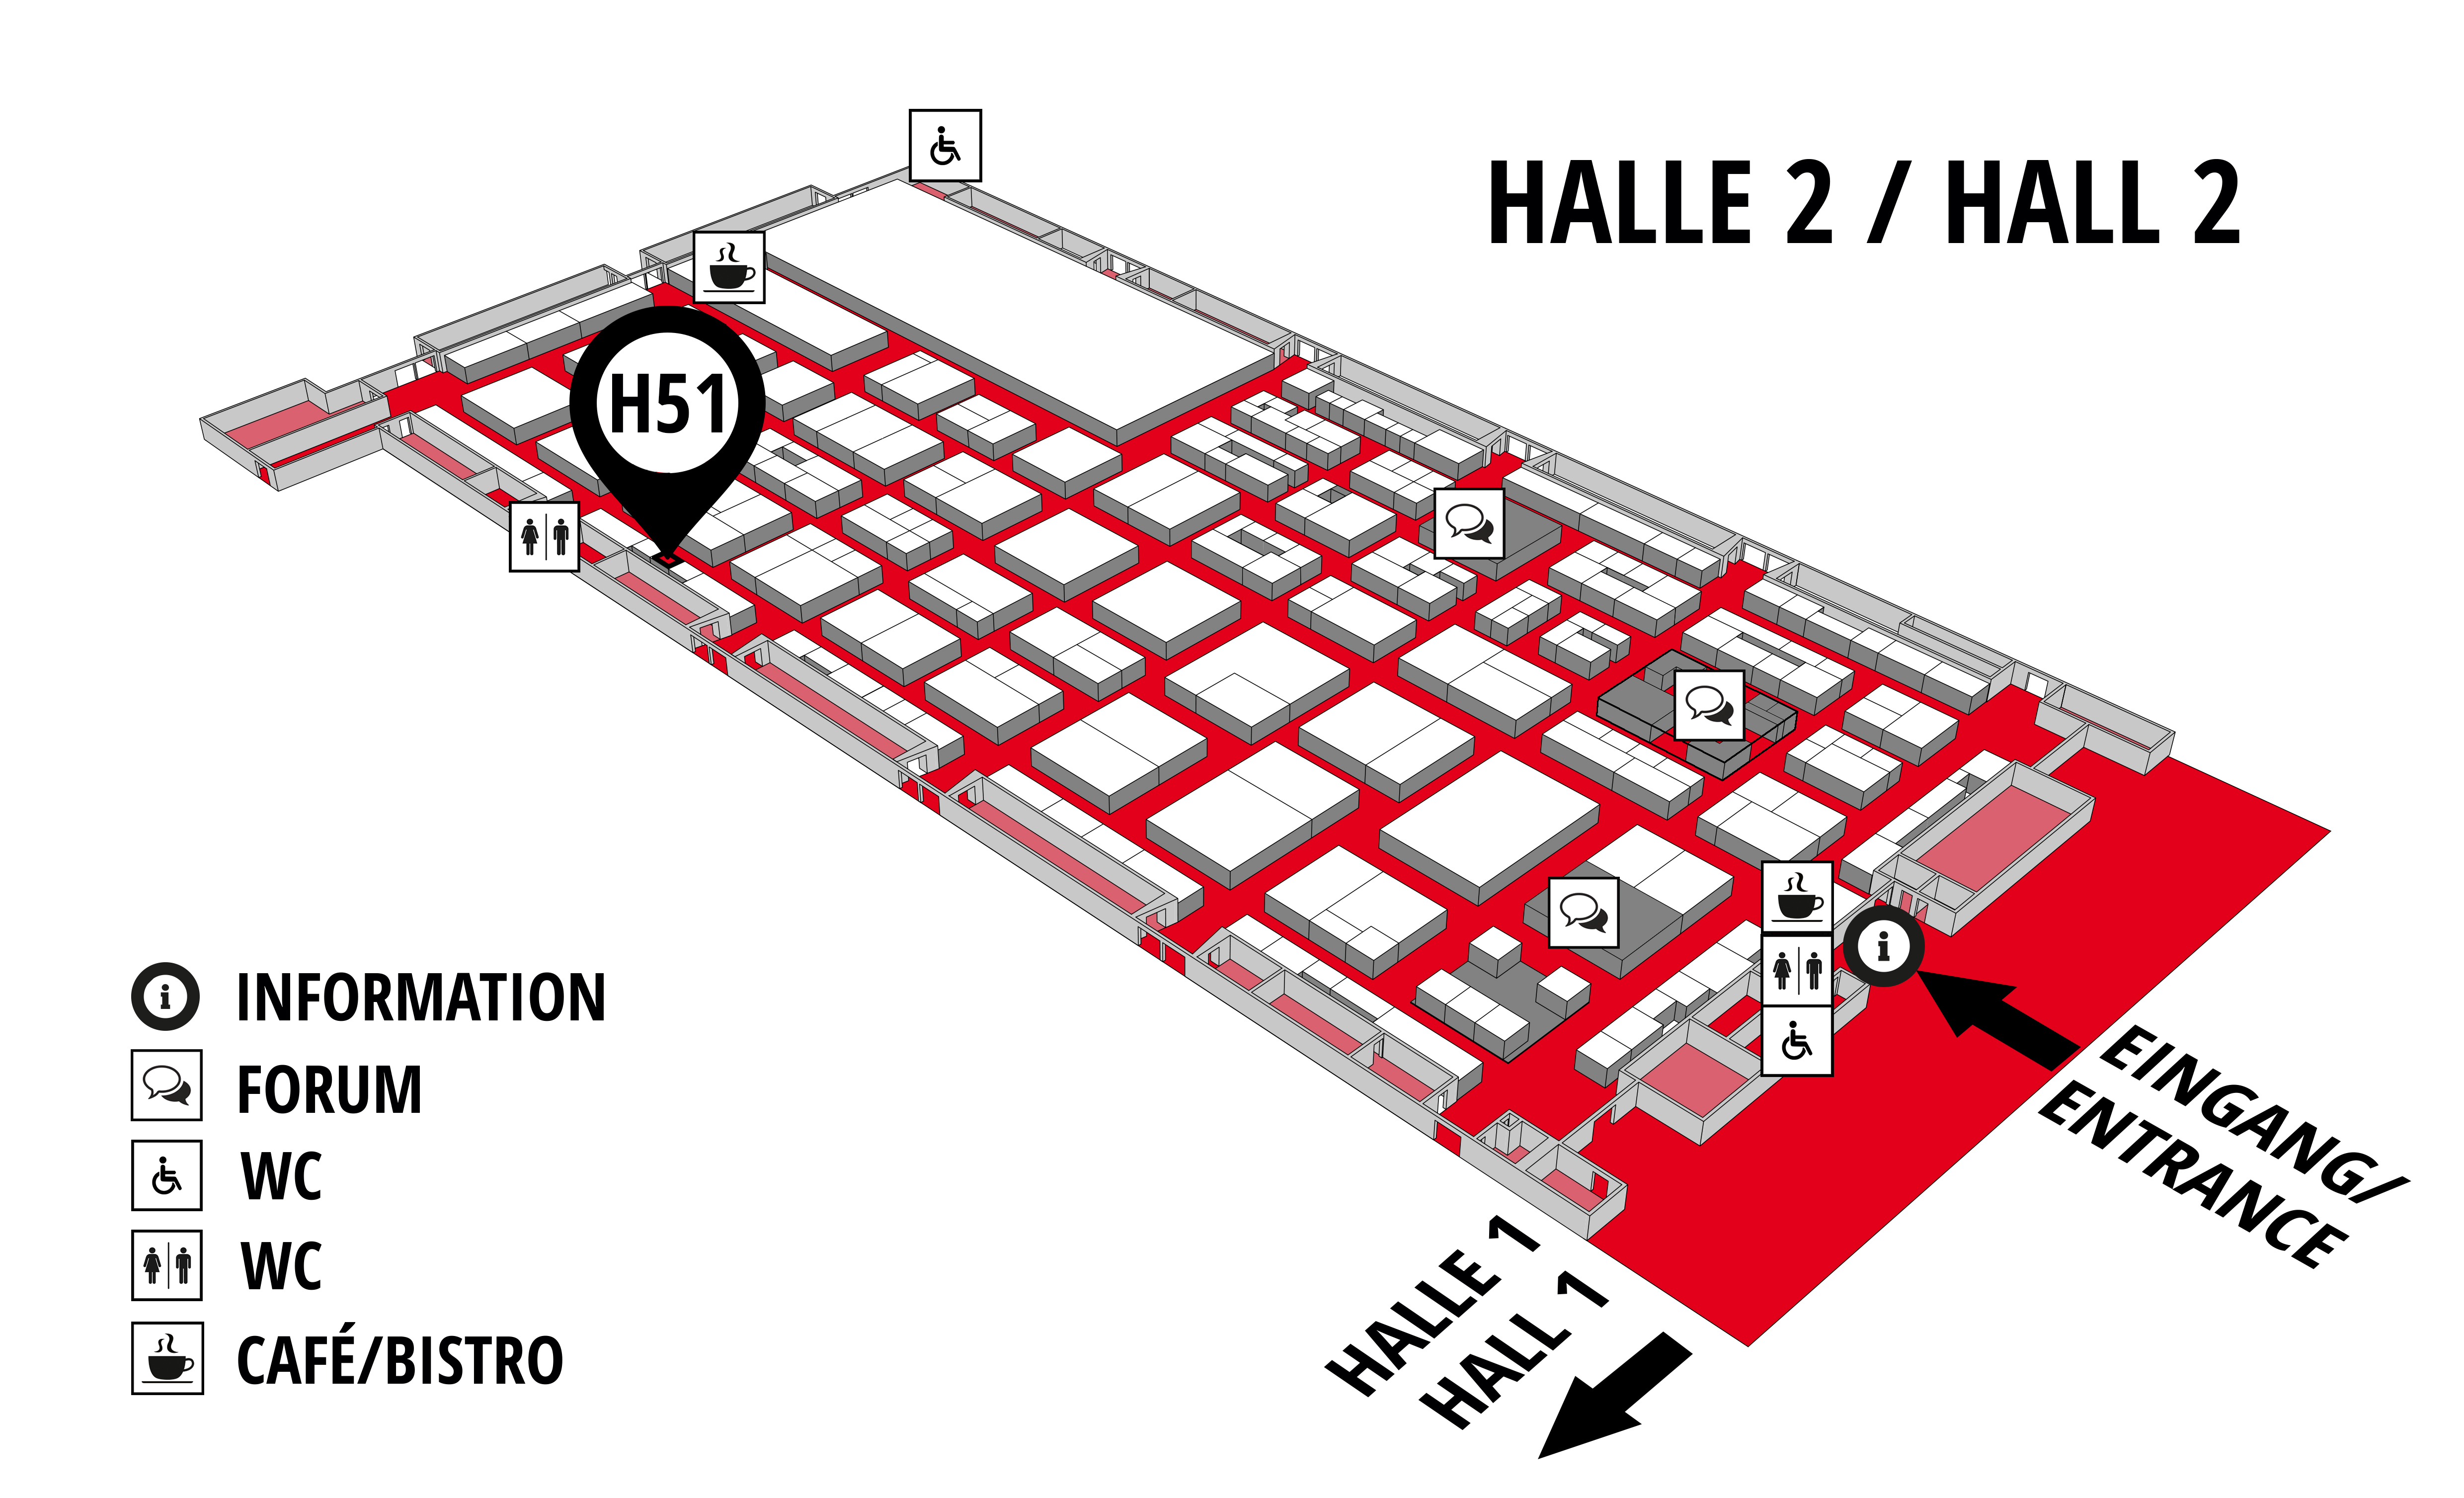 REHAB - Rehabilitation | Therapy | Care | Inclusion hall map (Hall 2): stand H51